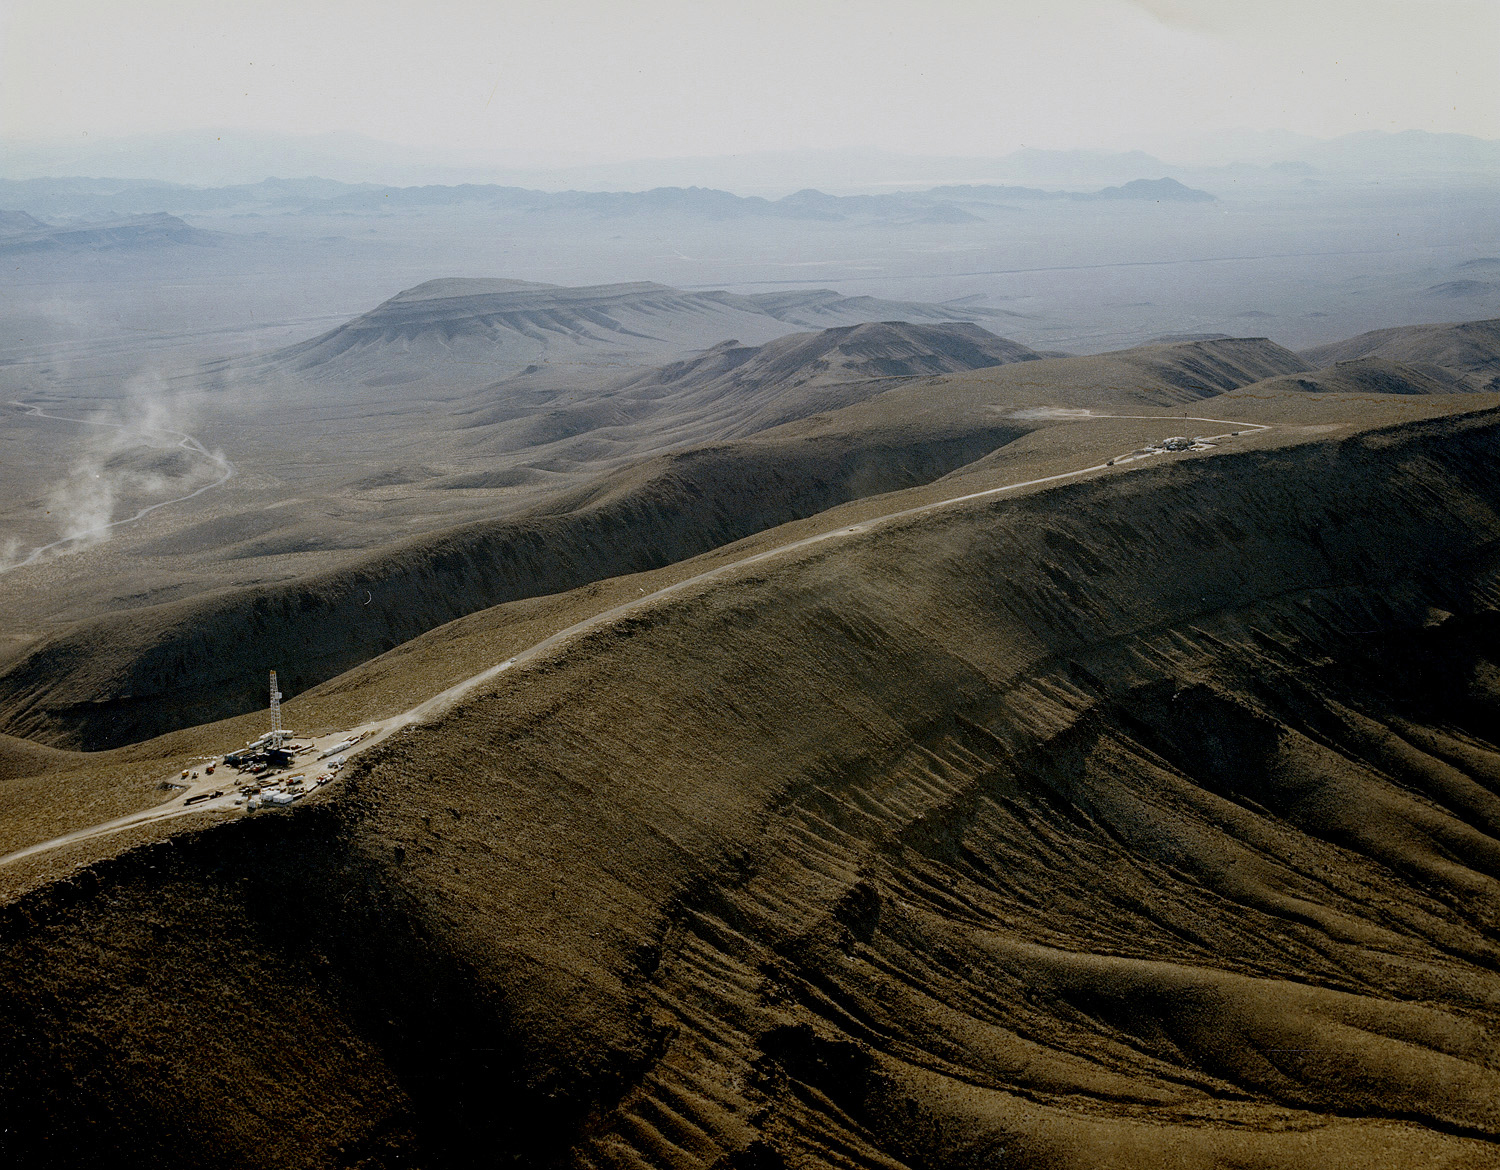 http://upload.wikimedia.org/wikipedia/commons/6/6a/Yucca_Mountain_crest_south.jpg